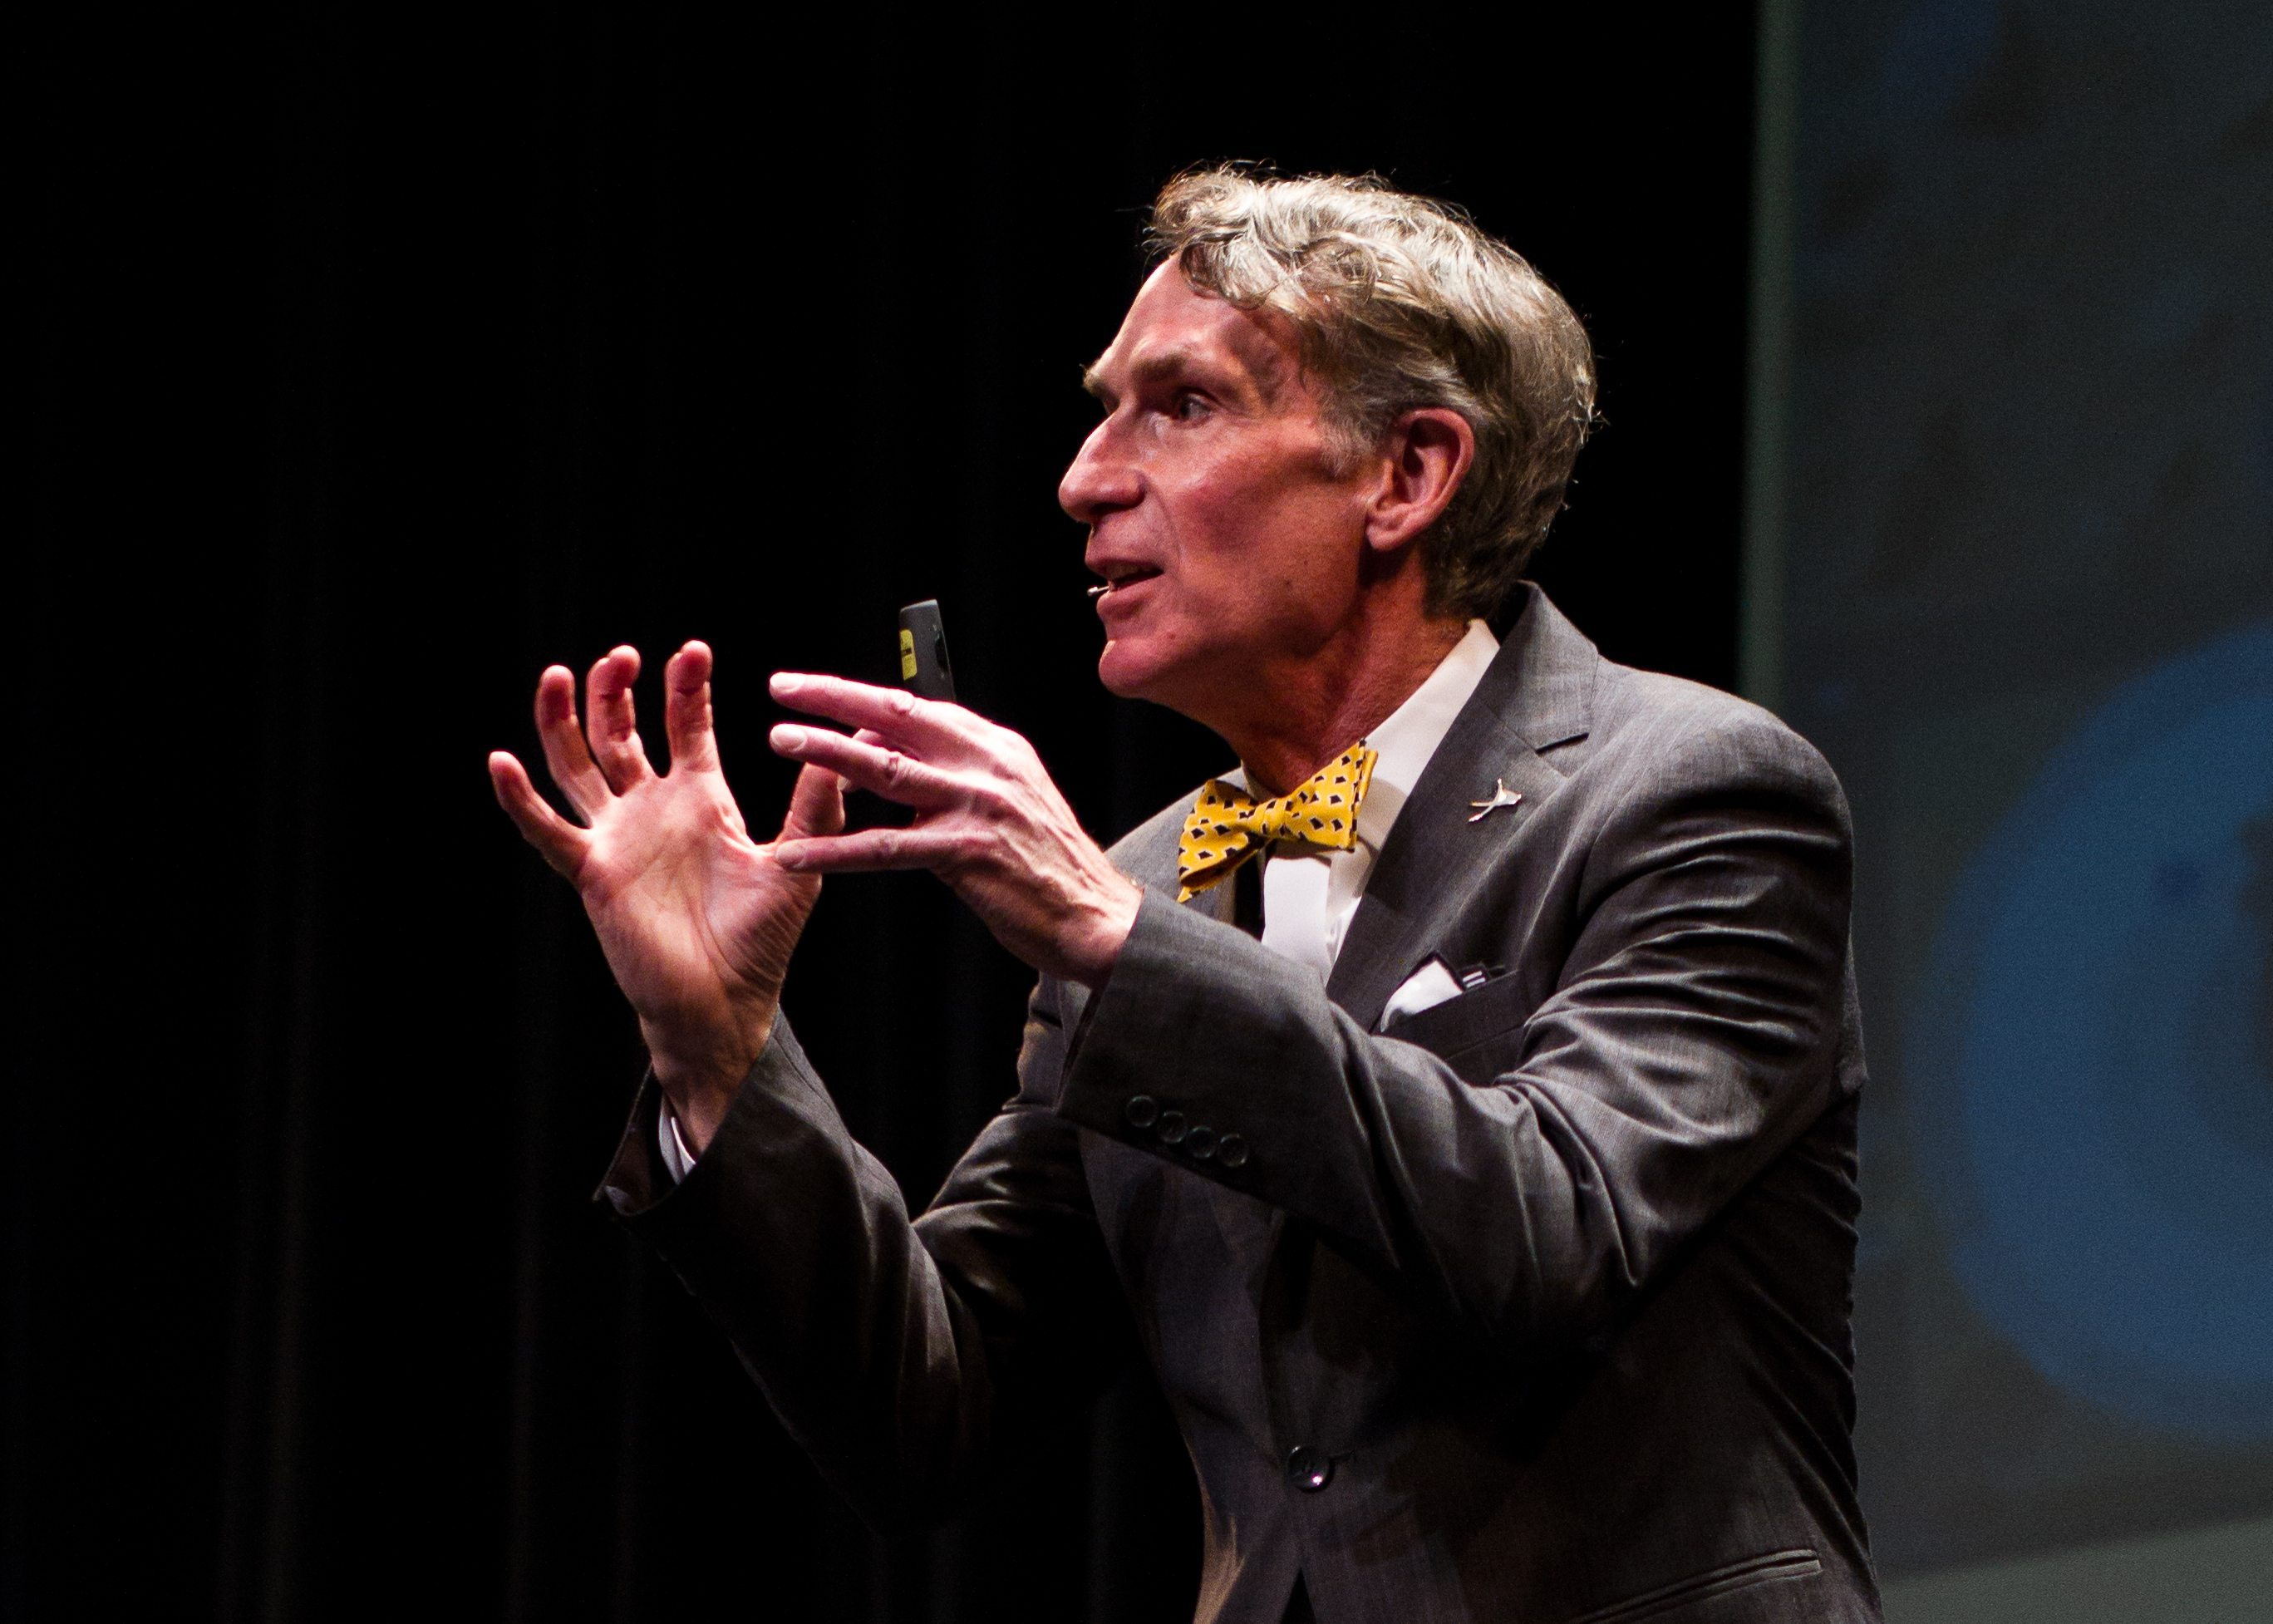 Watch Bill Nye The Science Guy Explains Gmos